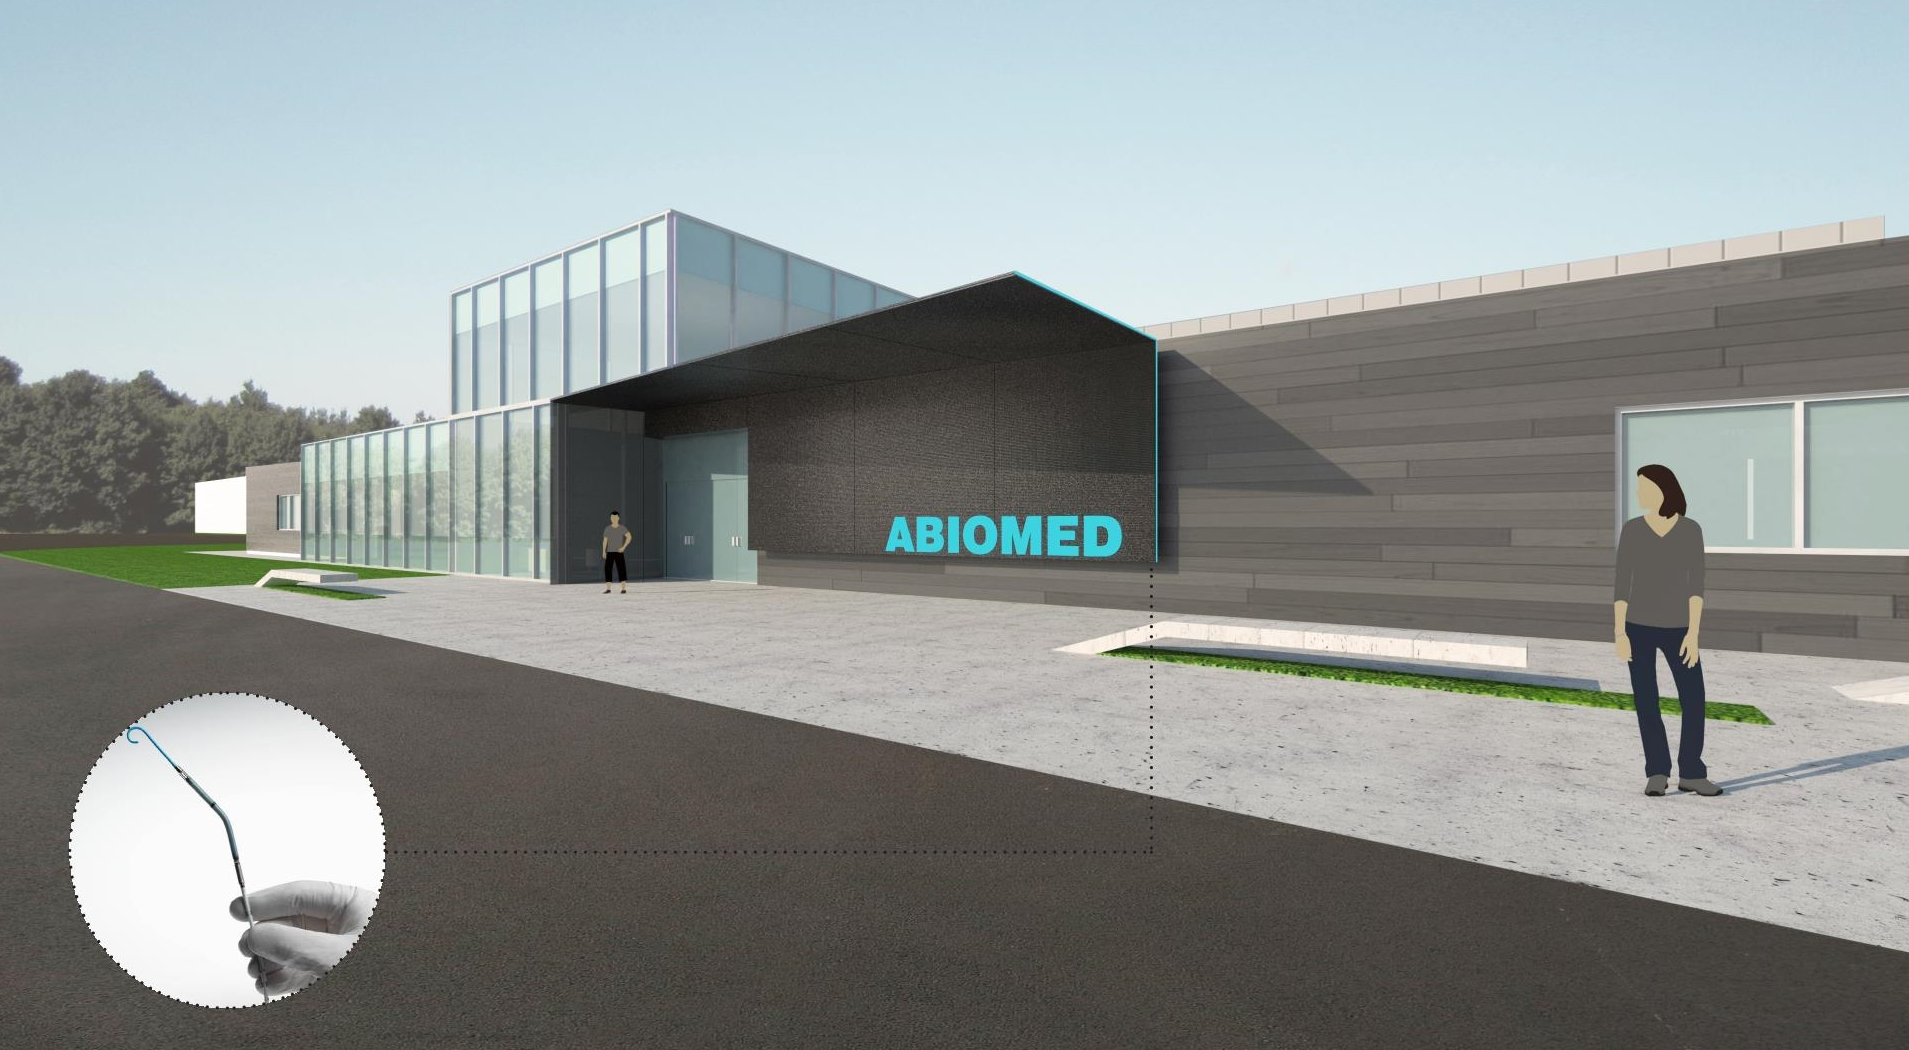 2015-12-22 Abiomed_Exterior Concepts-REVISED DESIGN.jpg